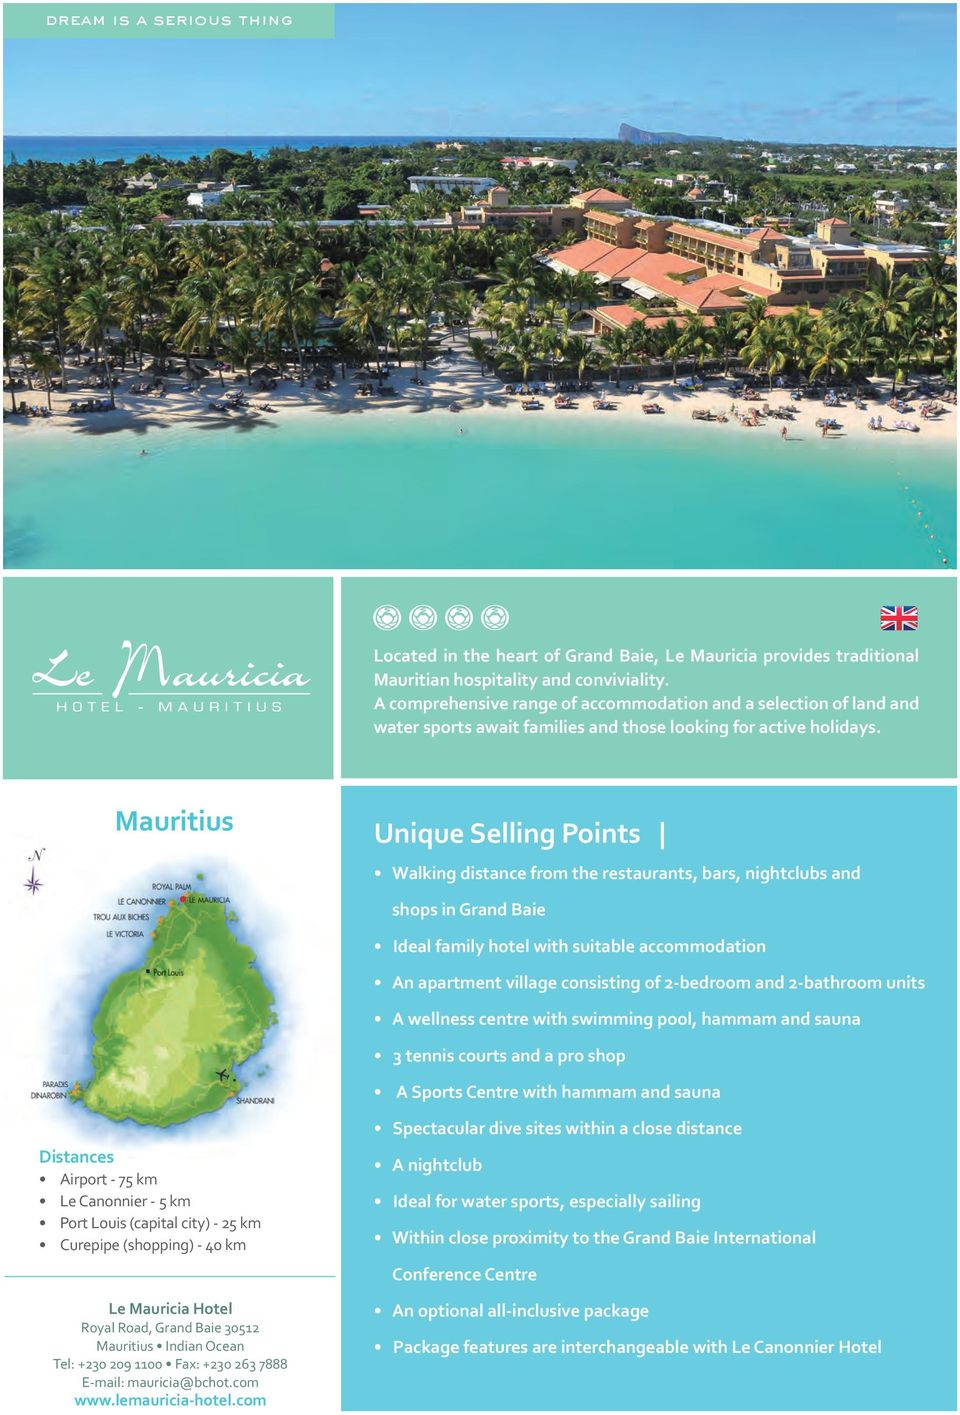 Mauritius Unique Selling Points Walking distance from the restaurants, bars, nightclubs and shops in Grand Baie Ideal family hotel with suitable accommodation An apartment village consisting of